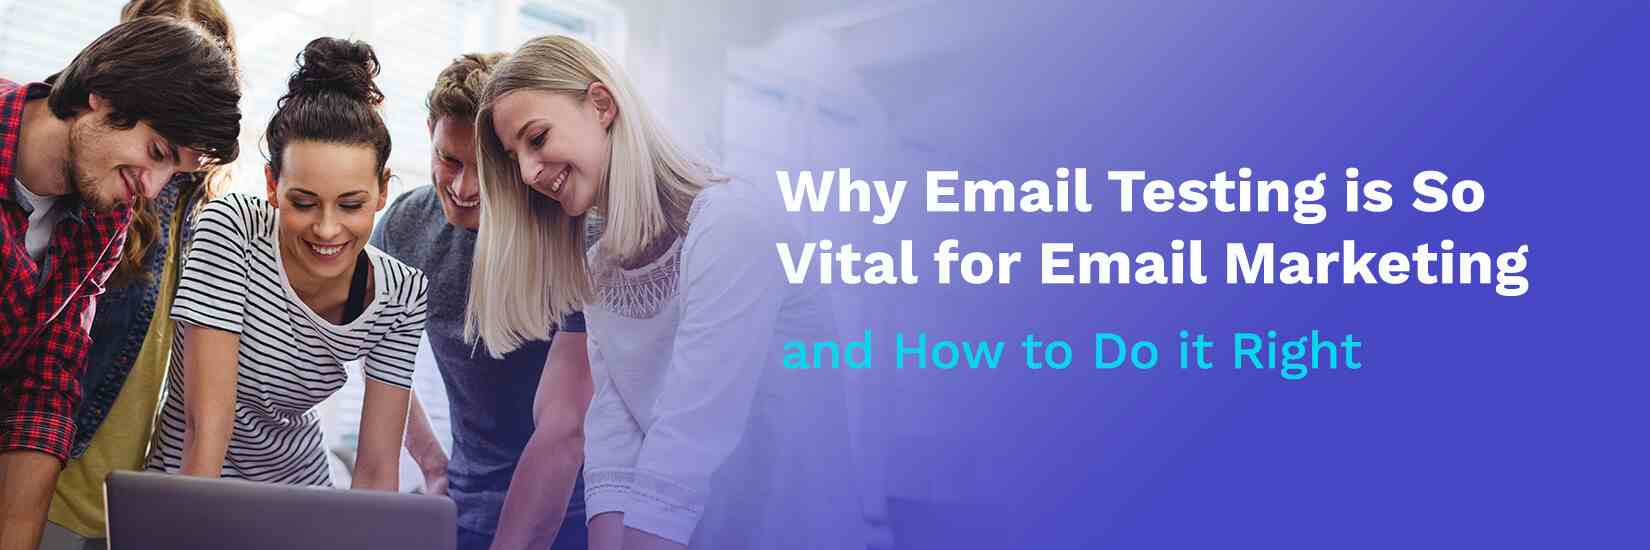 Why Email Testing is So Vital for Email Marketing